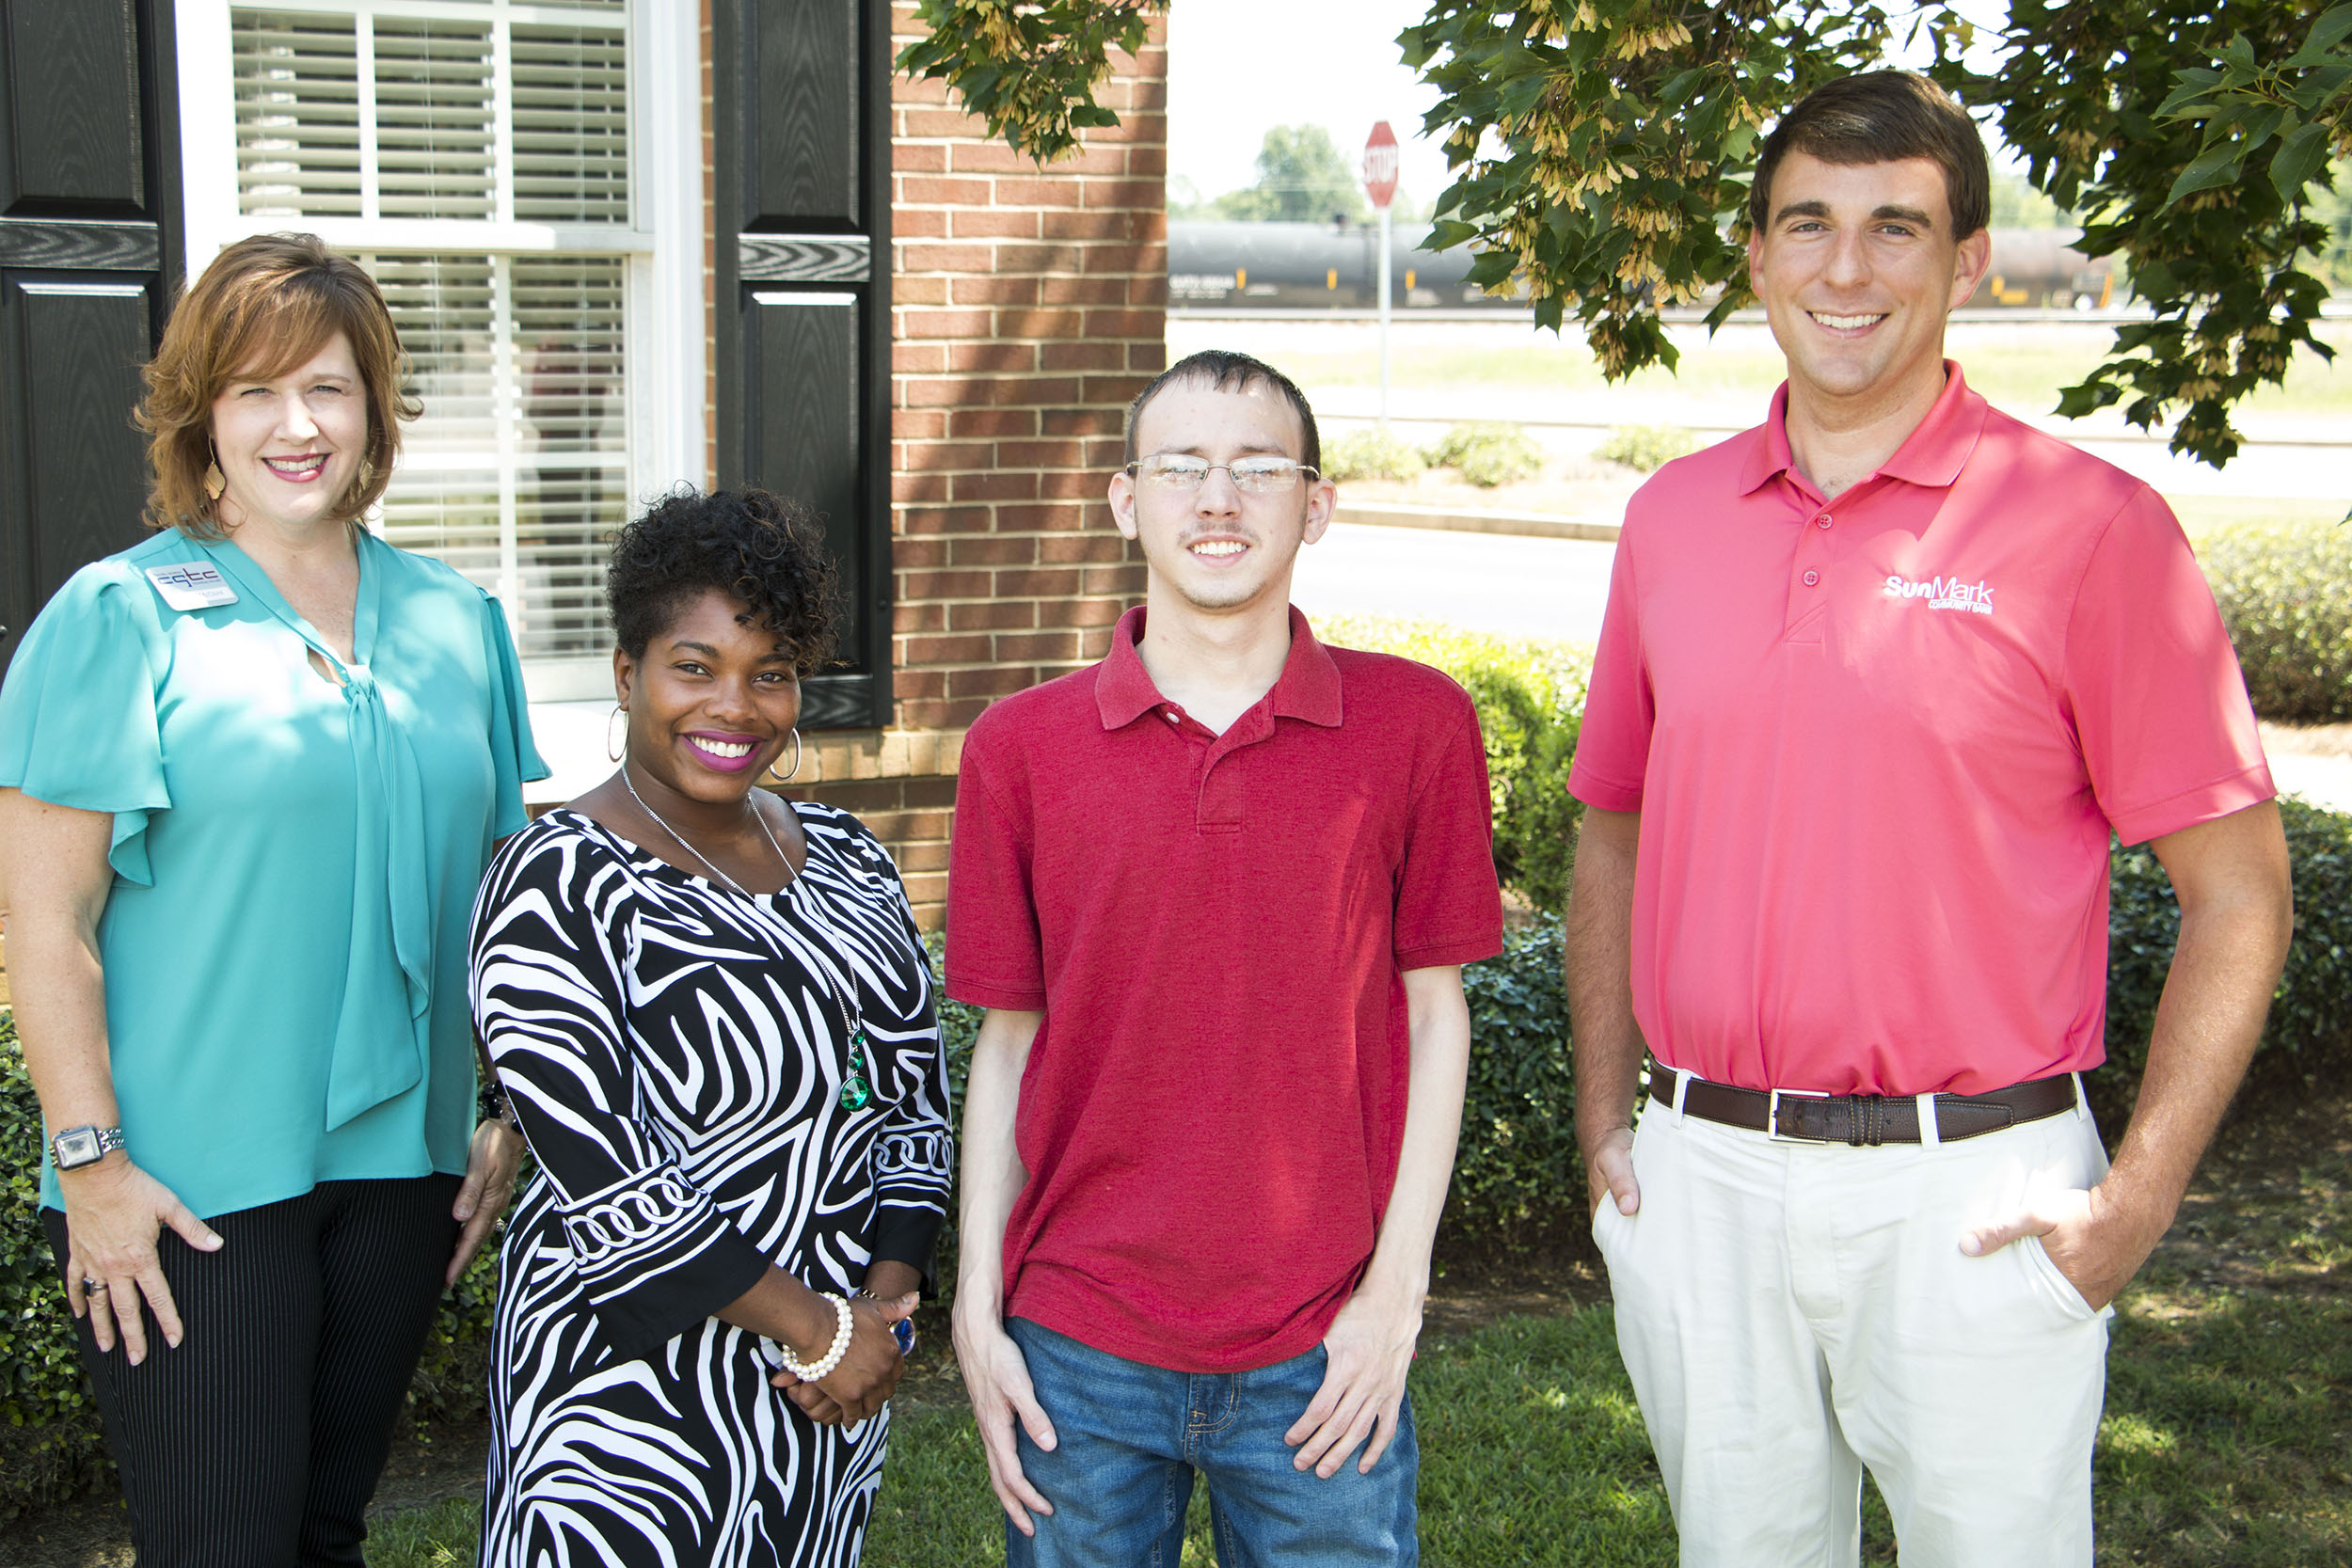 Tonya McClure, assistant vice president for Advancement at CGTC, and Carmen Davis, CGTC advancement specialist, join Austin James Smith an upcoming first-year student at the College as he receives recognition from Andrew Taunton, SunMark Community Bank Commercial Lender, Fort Valley Branch.